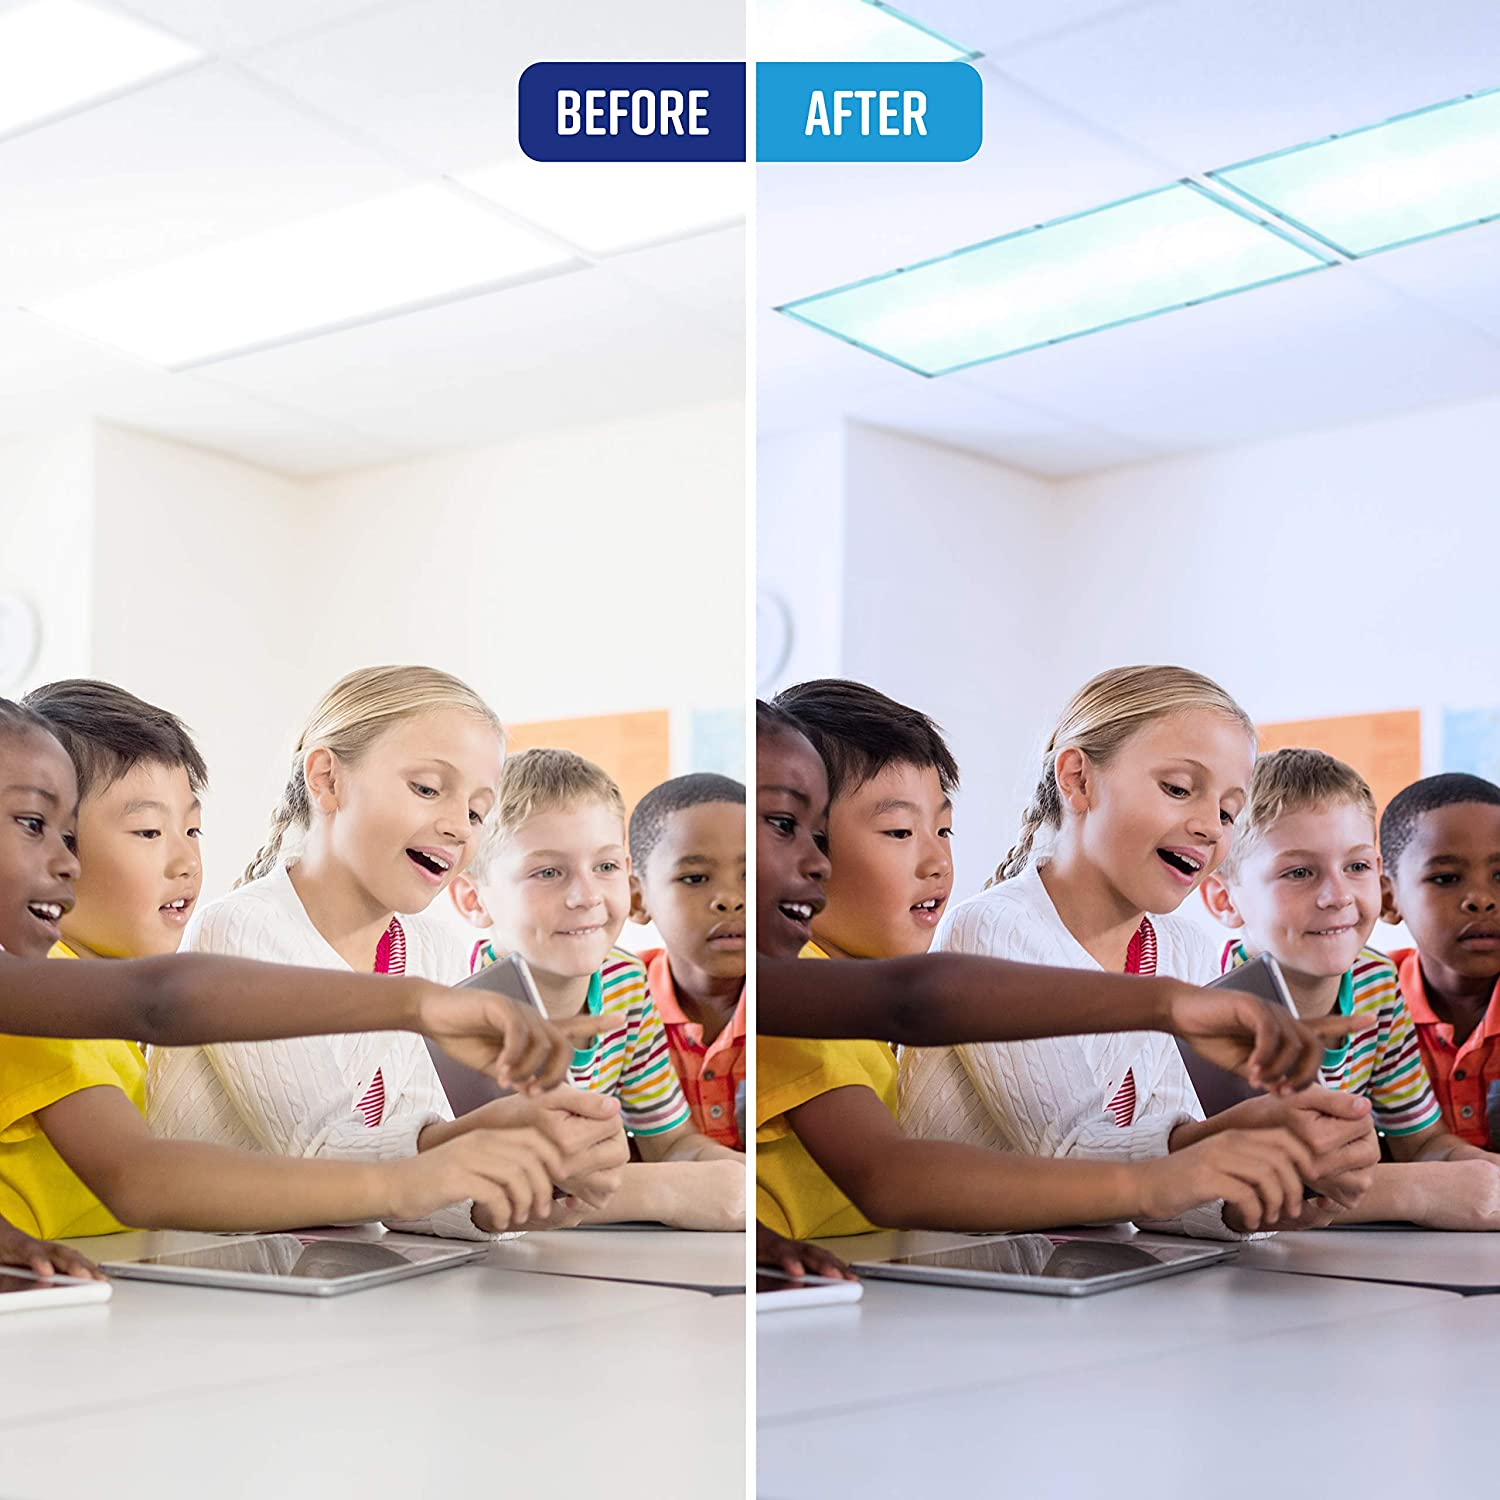 Eliminate Harsh Glare That Causes Eyestrain and Headaches at Work and School While Improving Focus and Classroom Management. 10 Pack; Blue Color GlareShade Fluorescent Light Filter Diffuser Covers